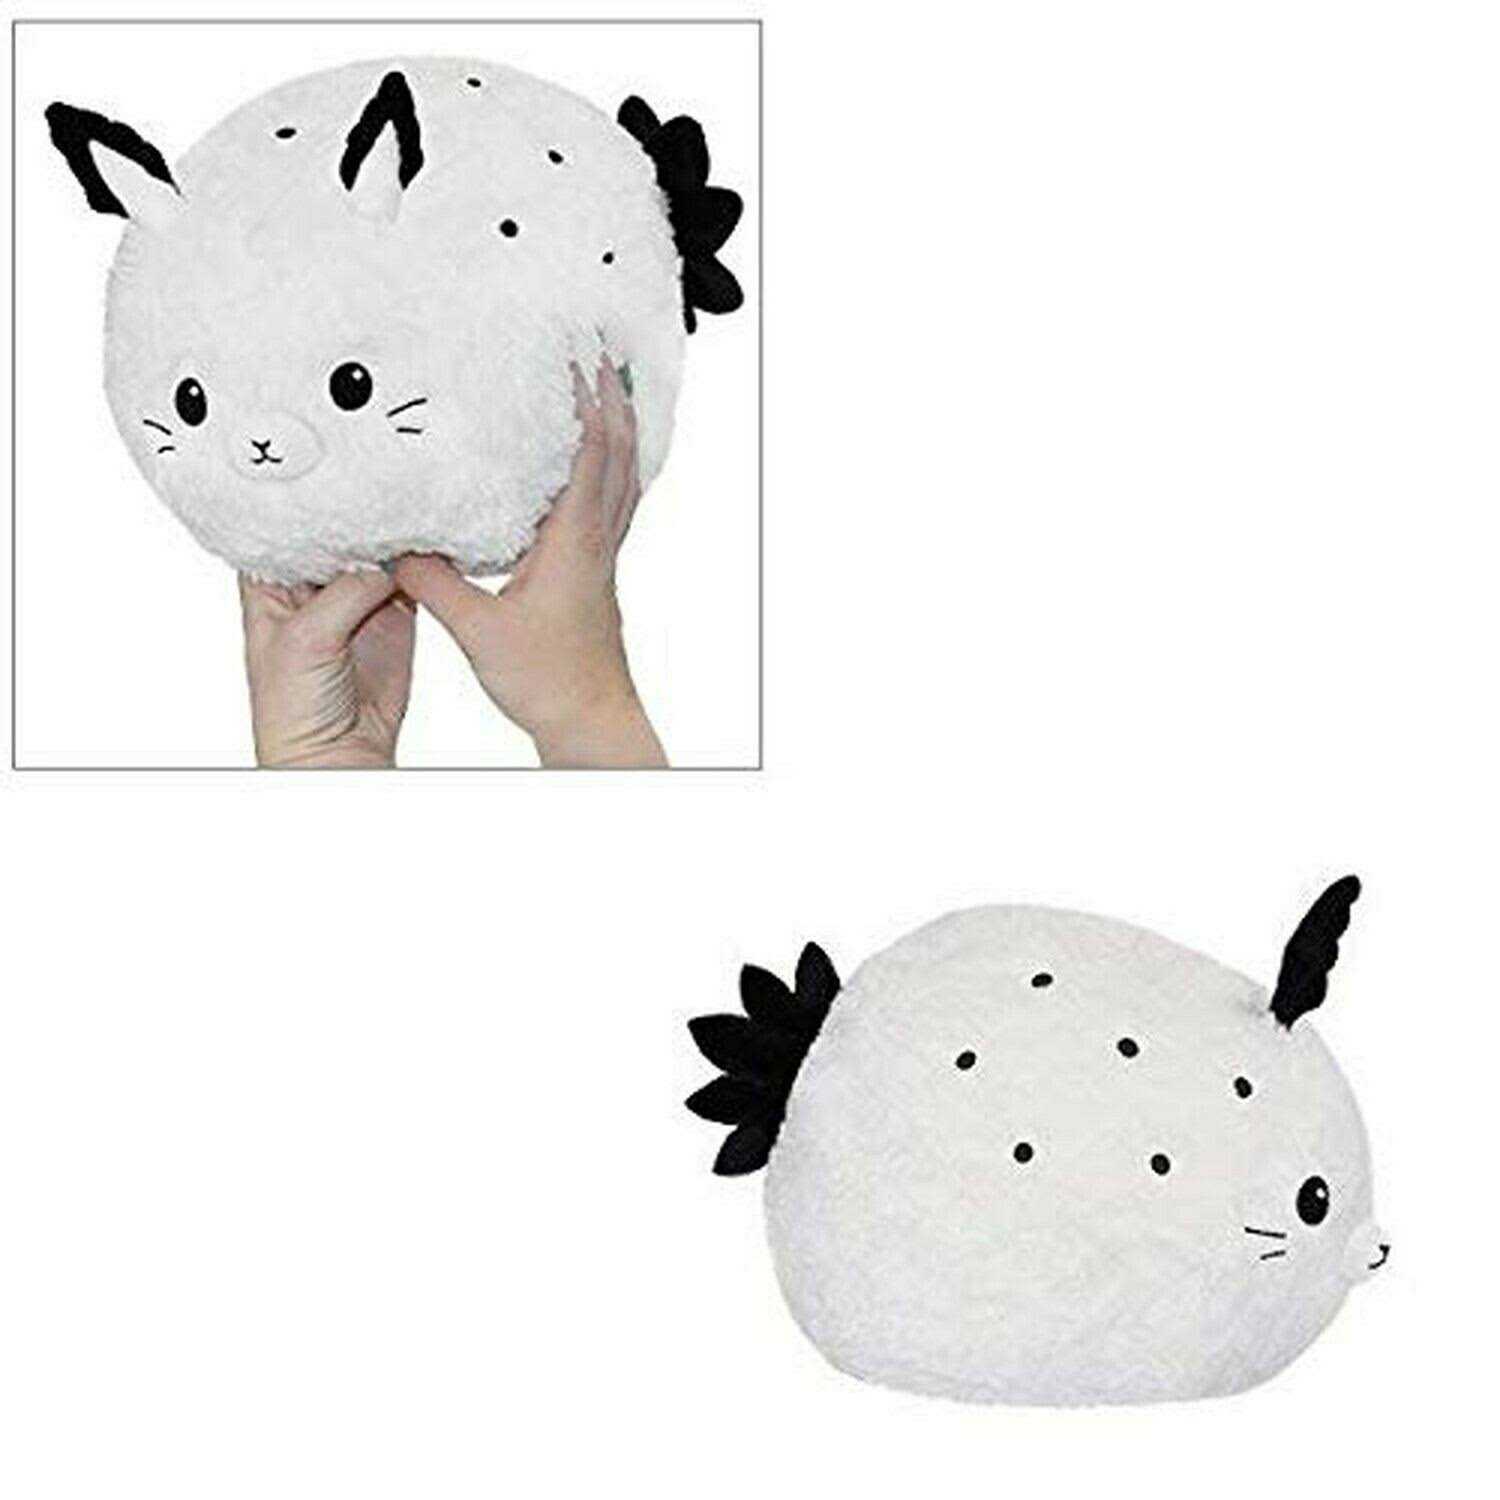 "Squishable / Mini Sea Bunny 7"" Plush"